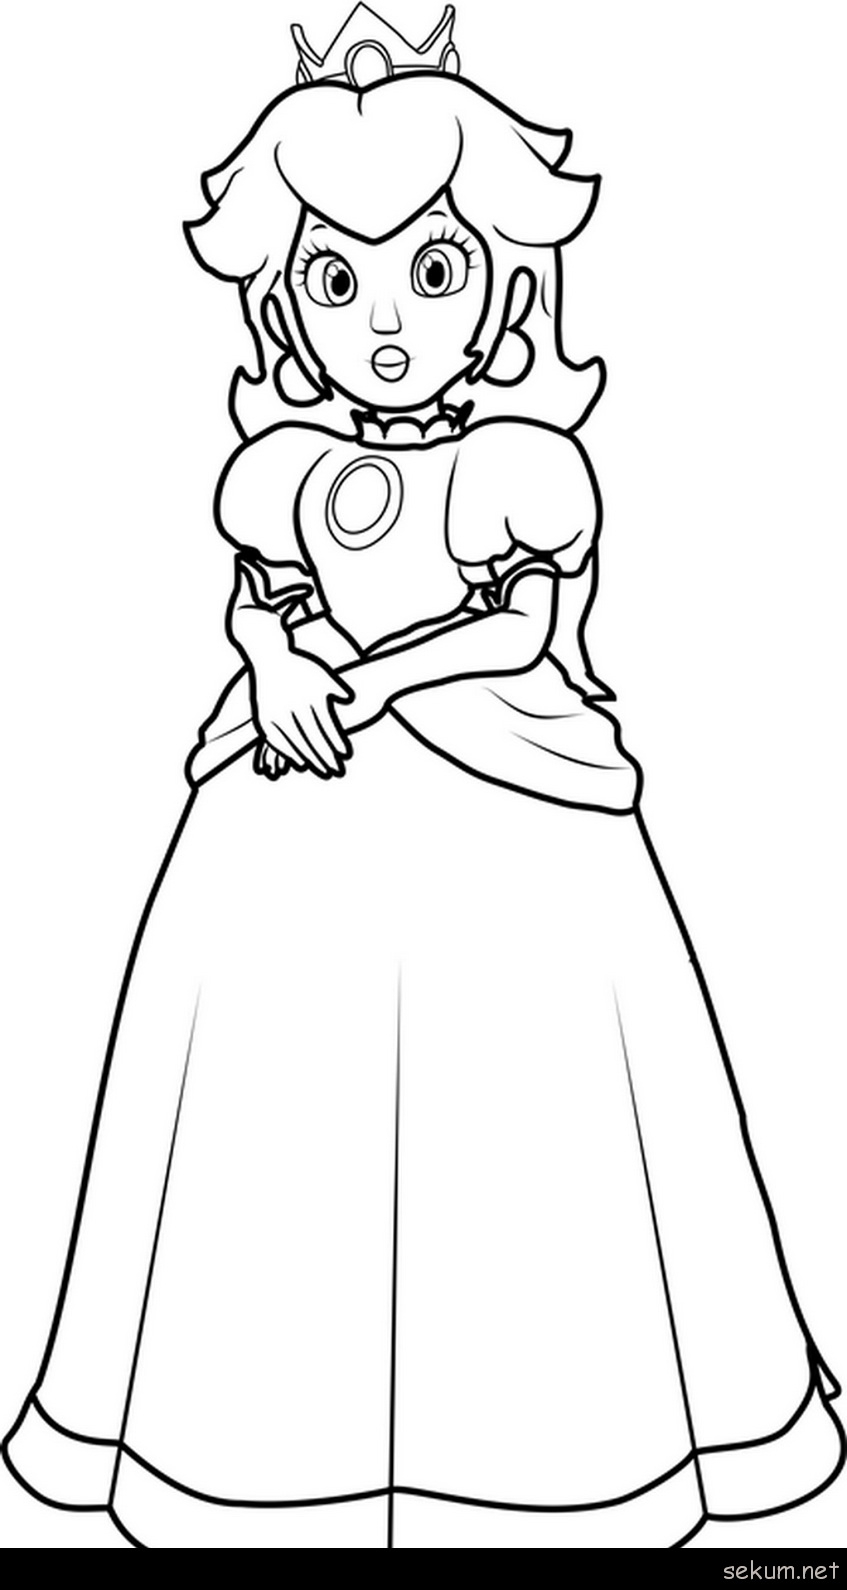 Peach From Mario Coloring Pages Super Mario Princess Peach Coloring Pages Princess Peach Coloring